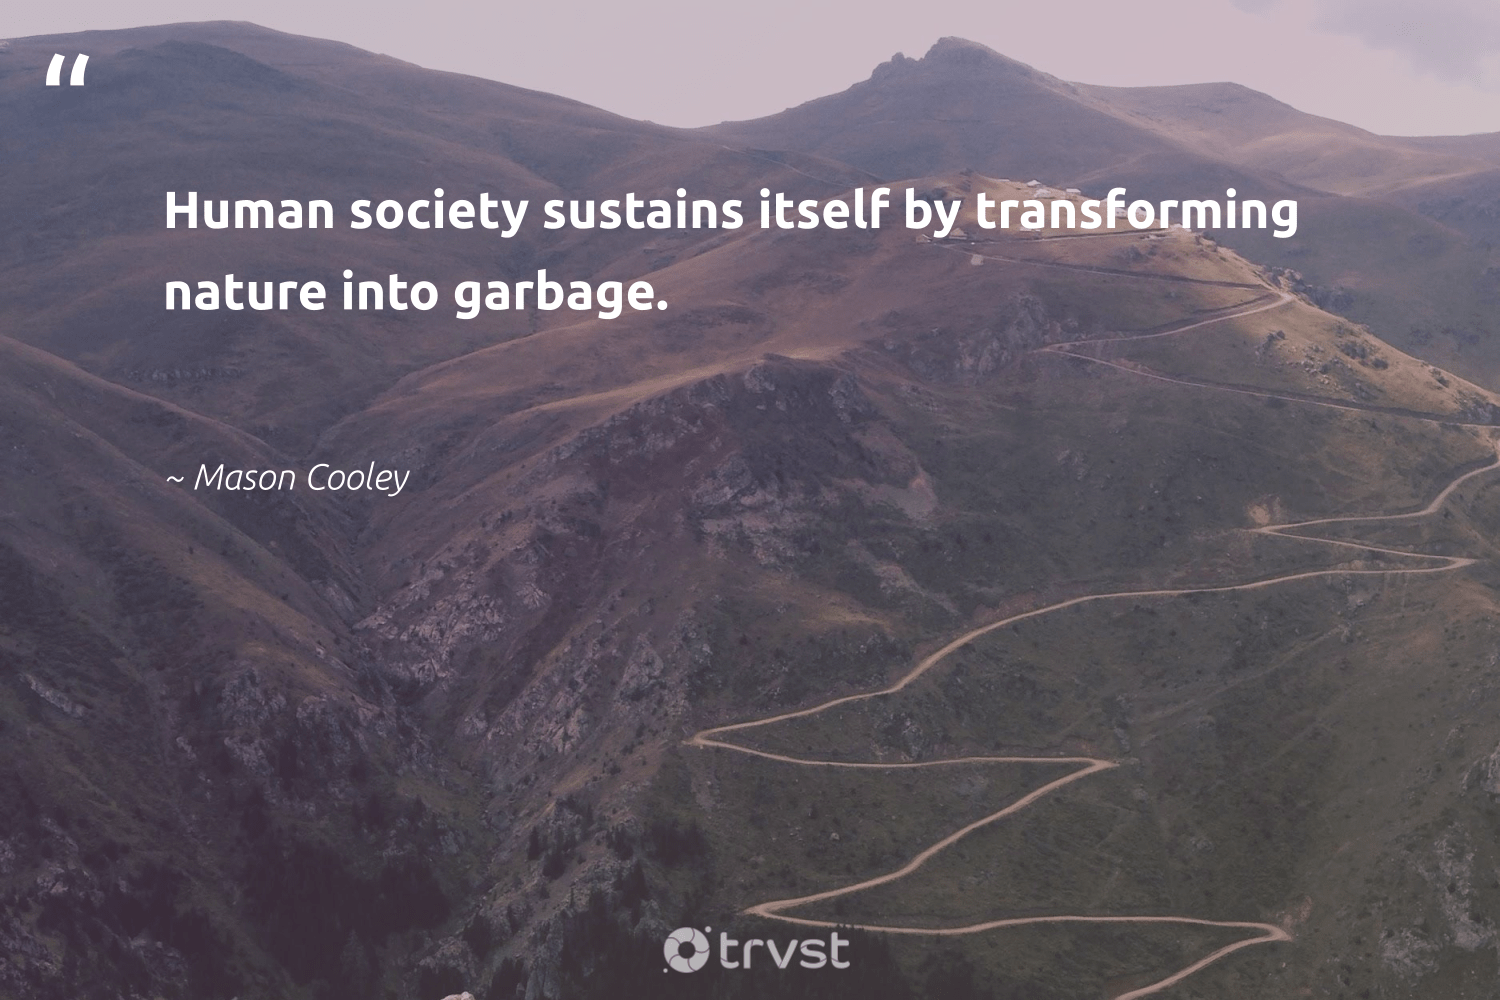 """""""Human society sustains itself by transforming nature into garbage.""""  - Mason Cooley #trvst #quotes #environment #garbage #nature #society #earth #sustainable #socialimpact #planet #environmentallyfriendly #eco"""